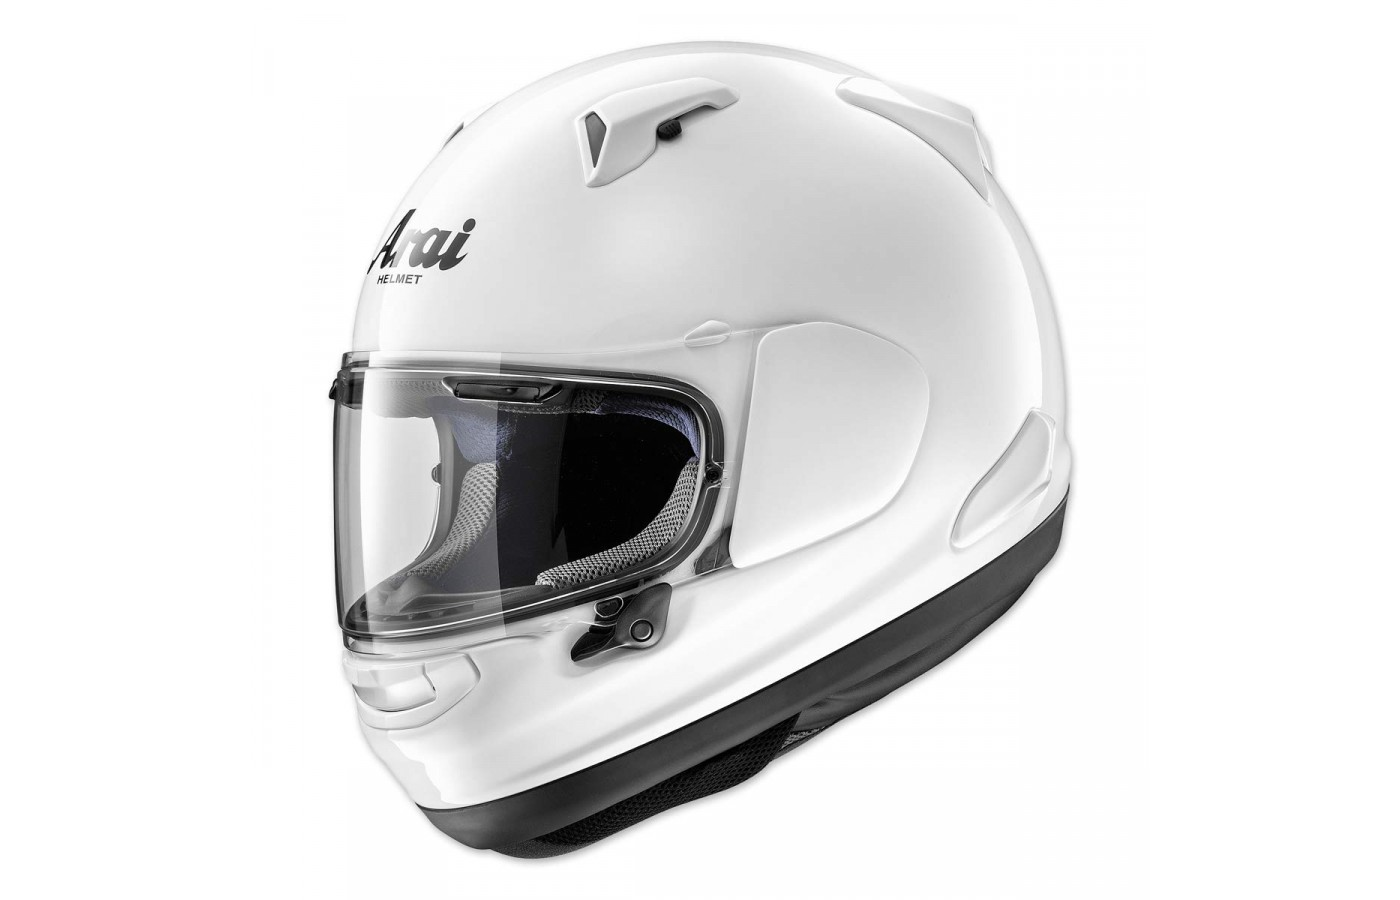 This helmet has passed many safety tests